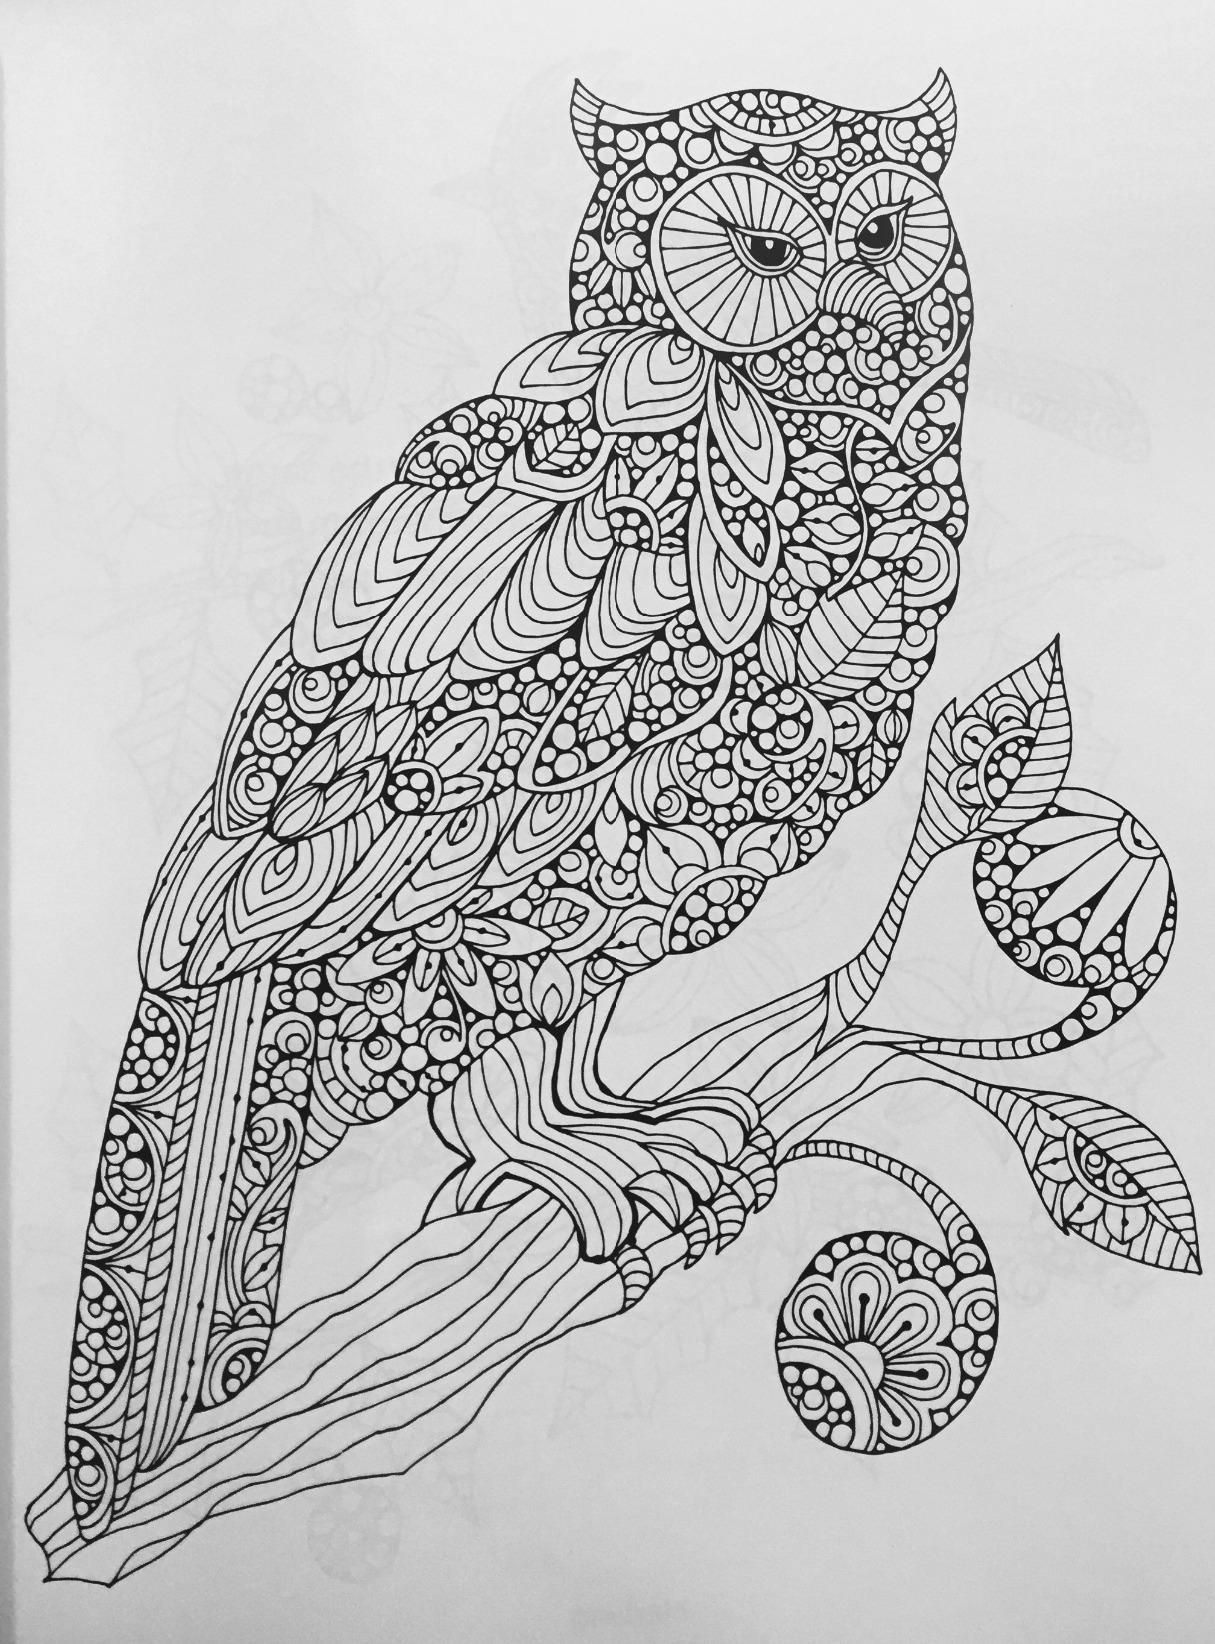 Amazon Com Creative Coloring Birds Art Activity Pages To Relax And Enjoy 9781497200036 Va Owl Coloring Pages Animal Coloring Pages Mandala Coloring Pages